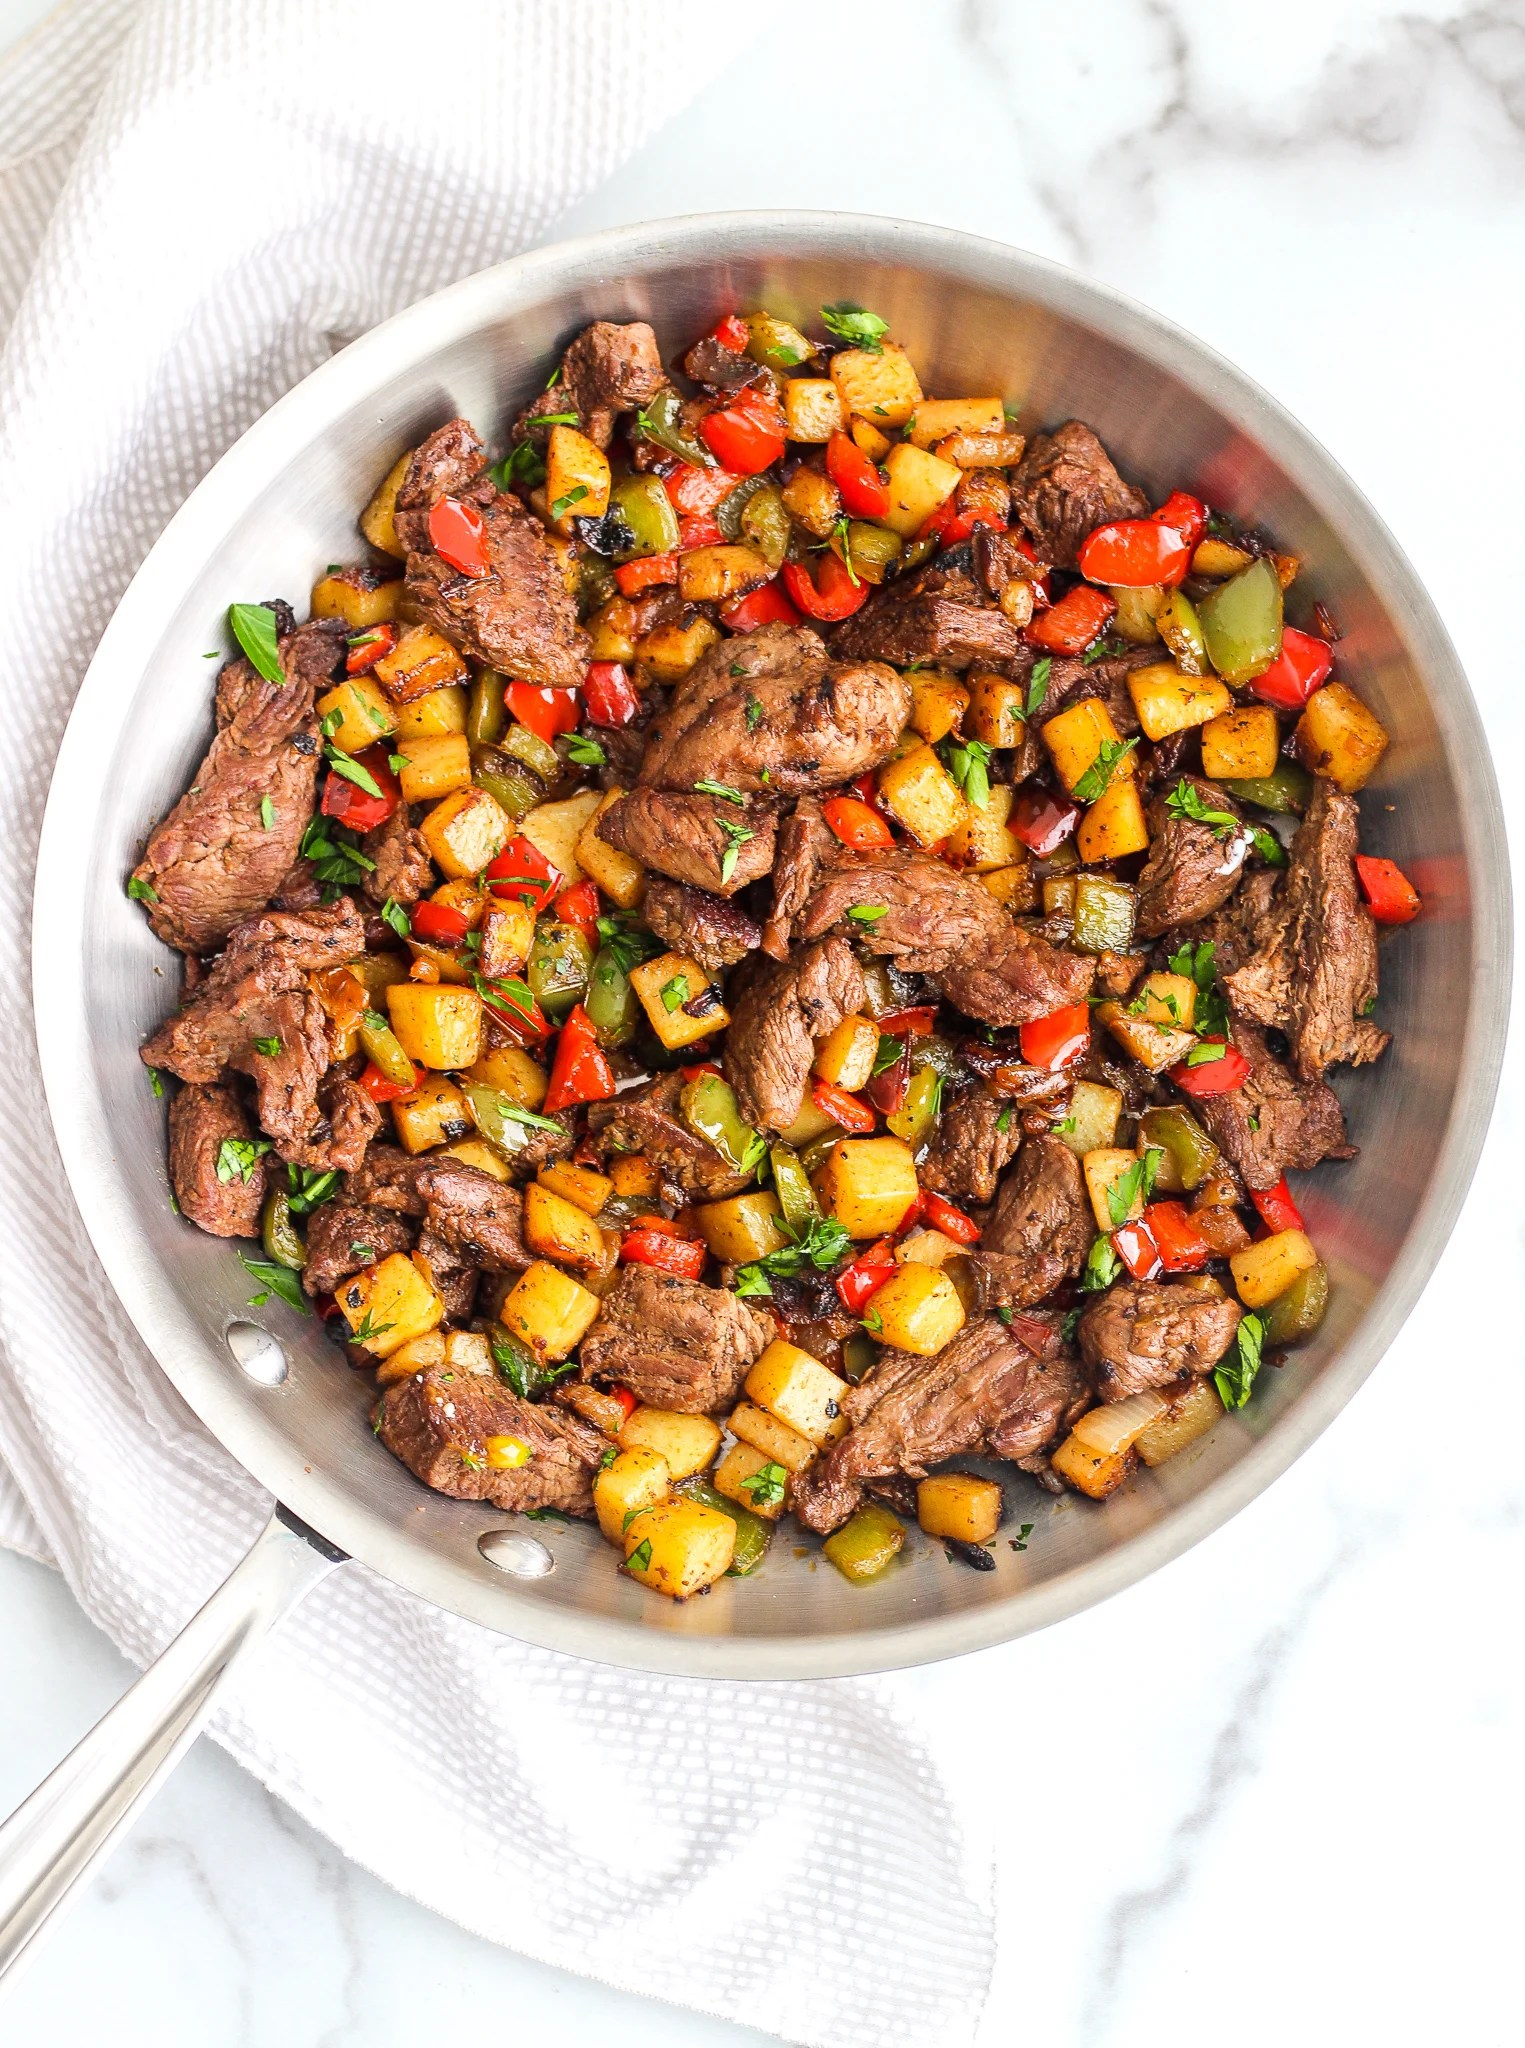 Whole30 Steak Breakfast Hash in a stainless steel skillet